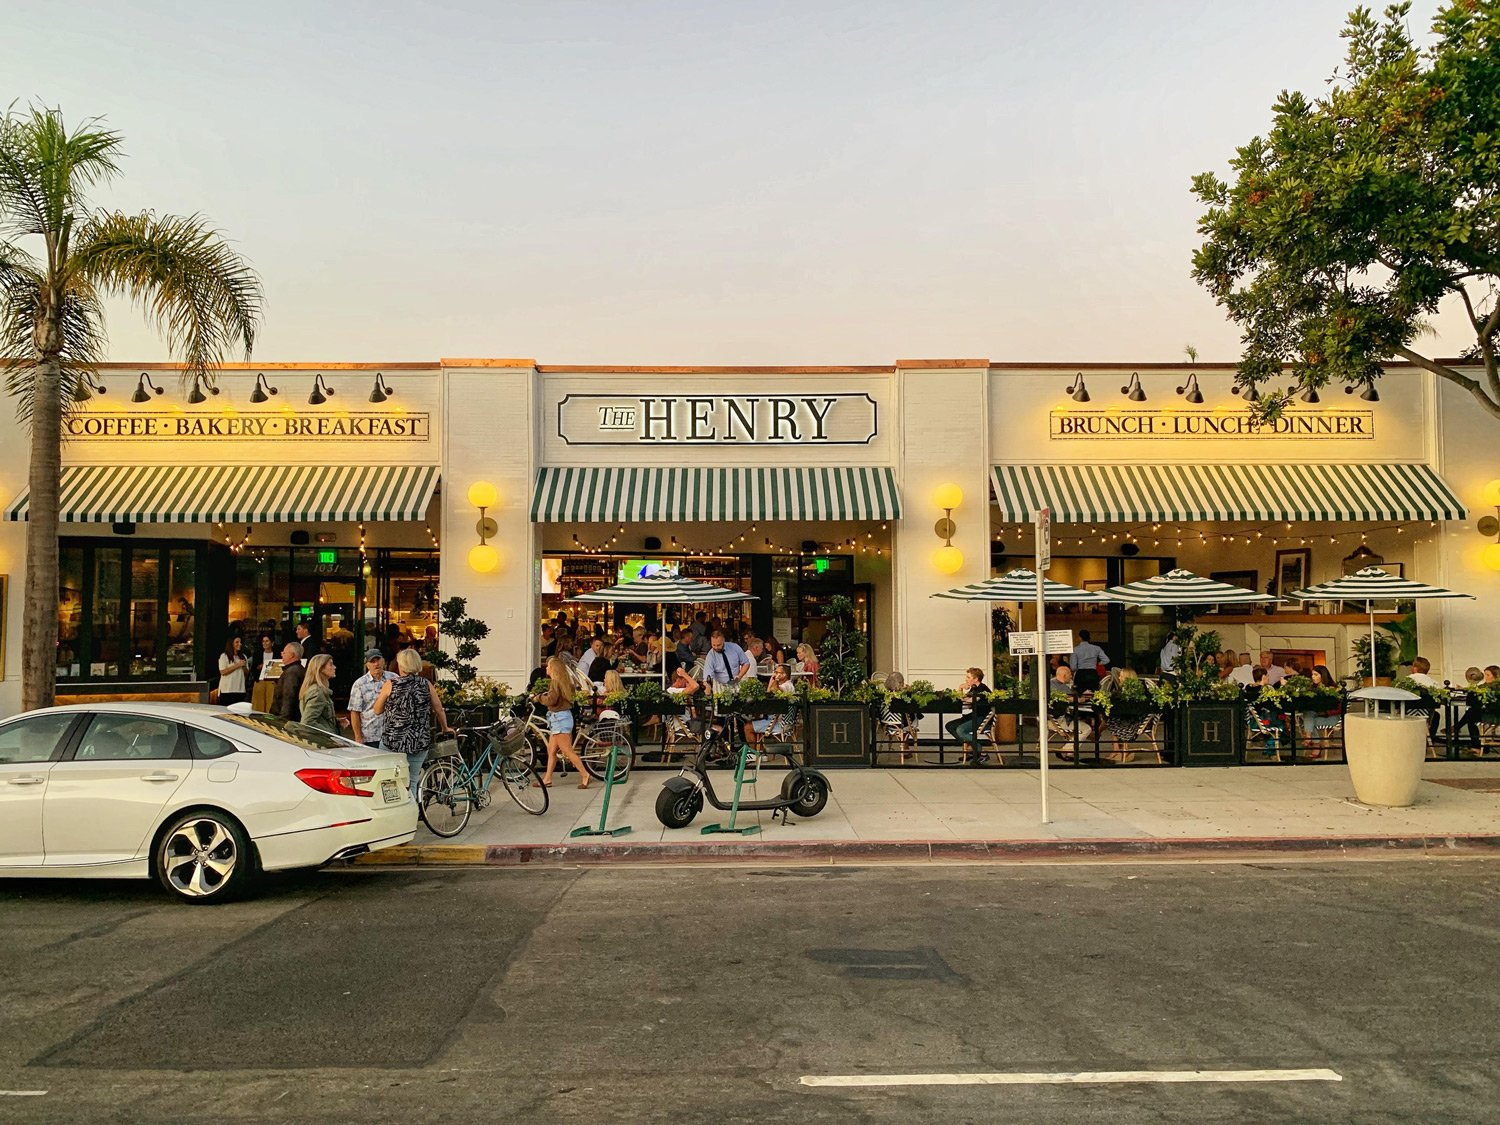 The Henry Restaurant In Coronado